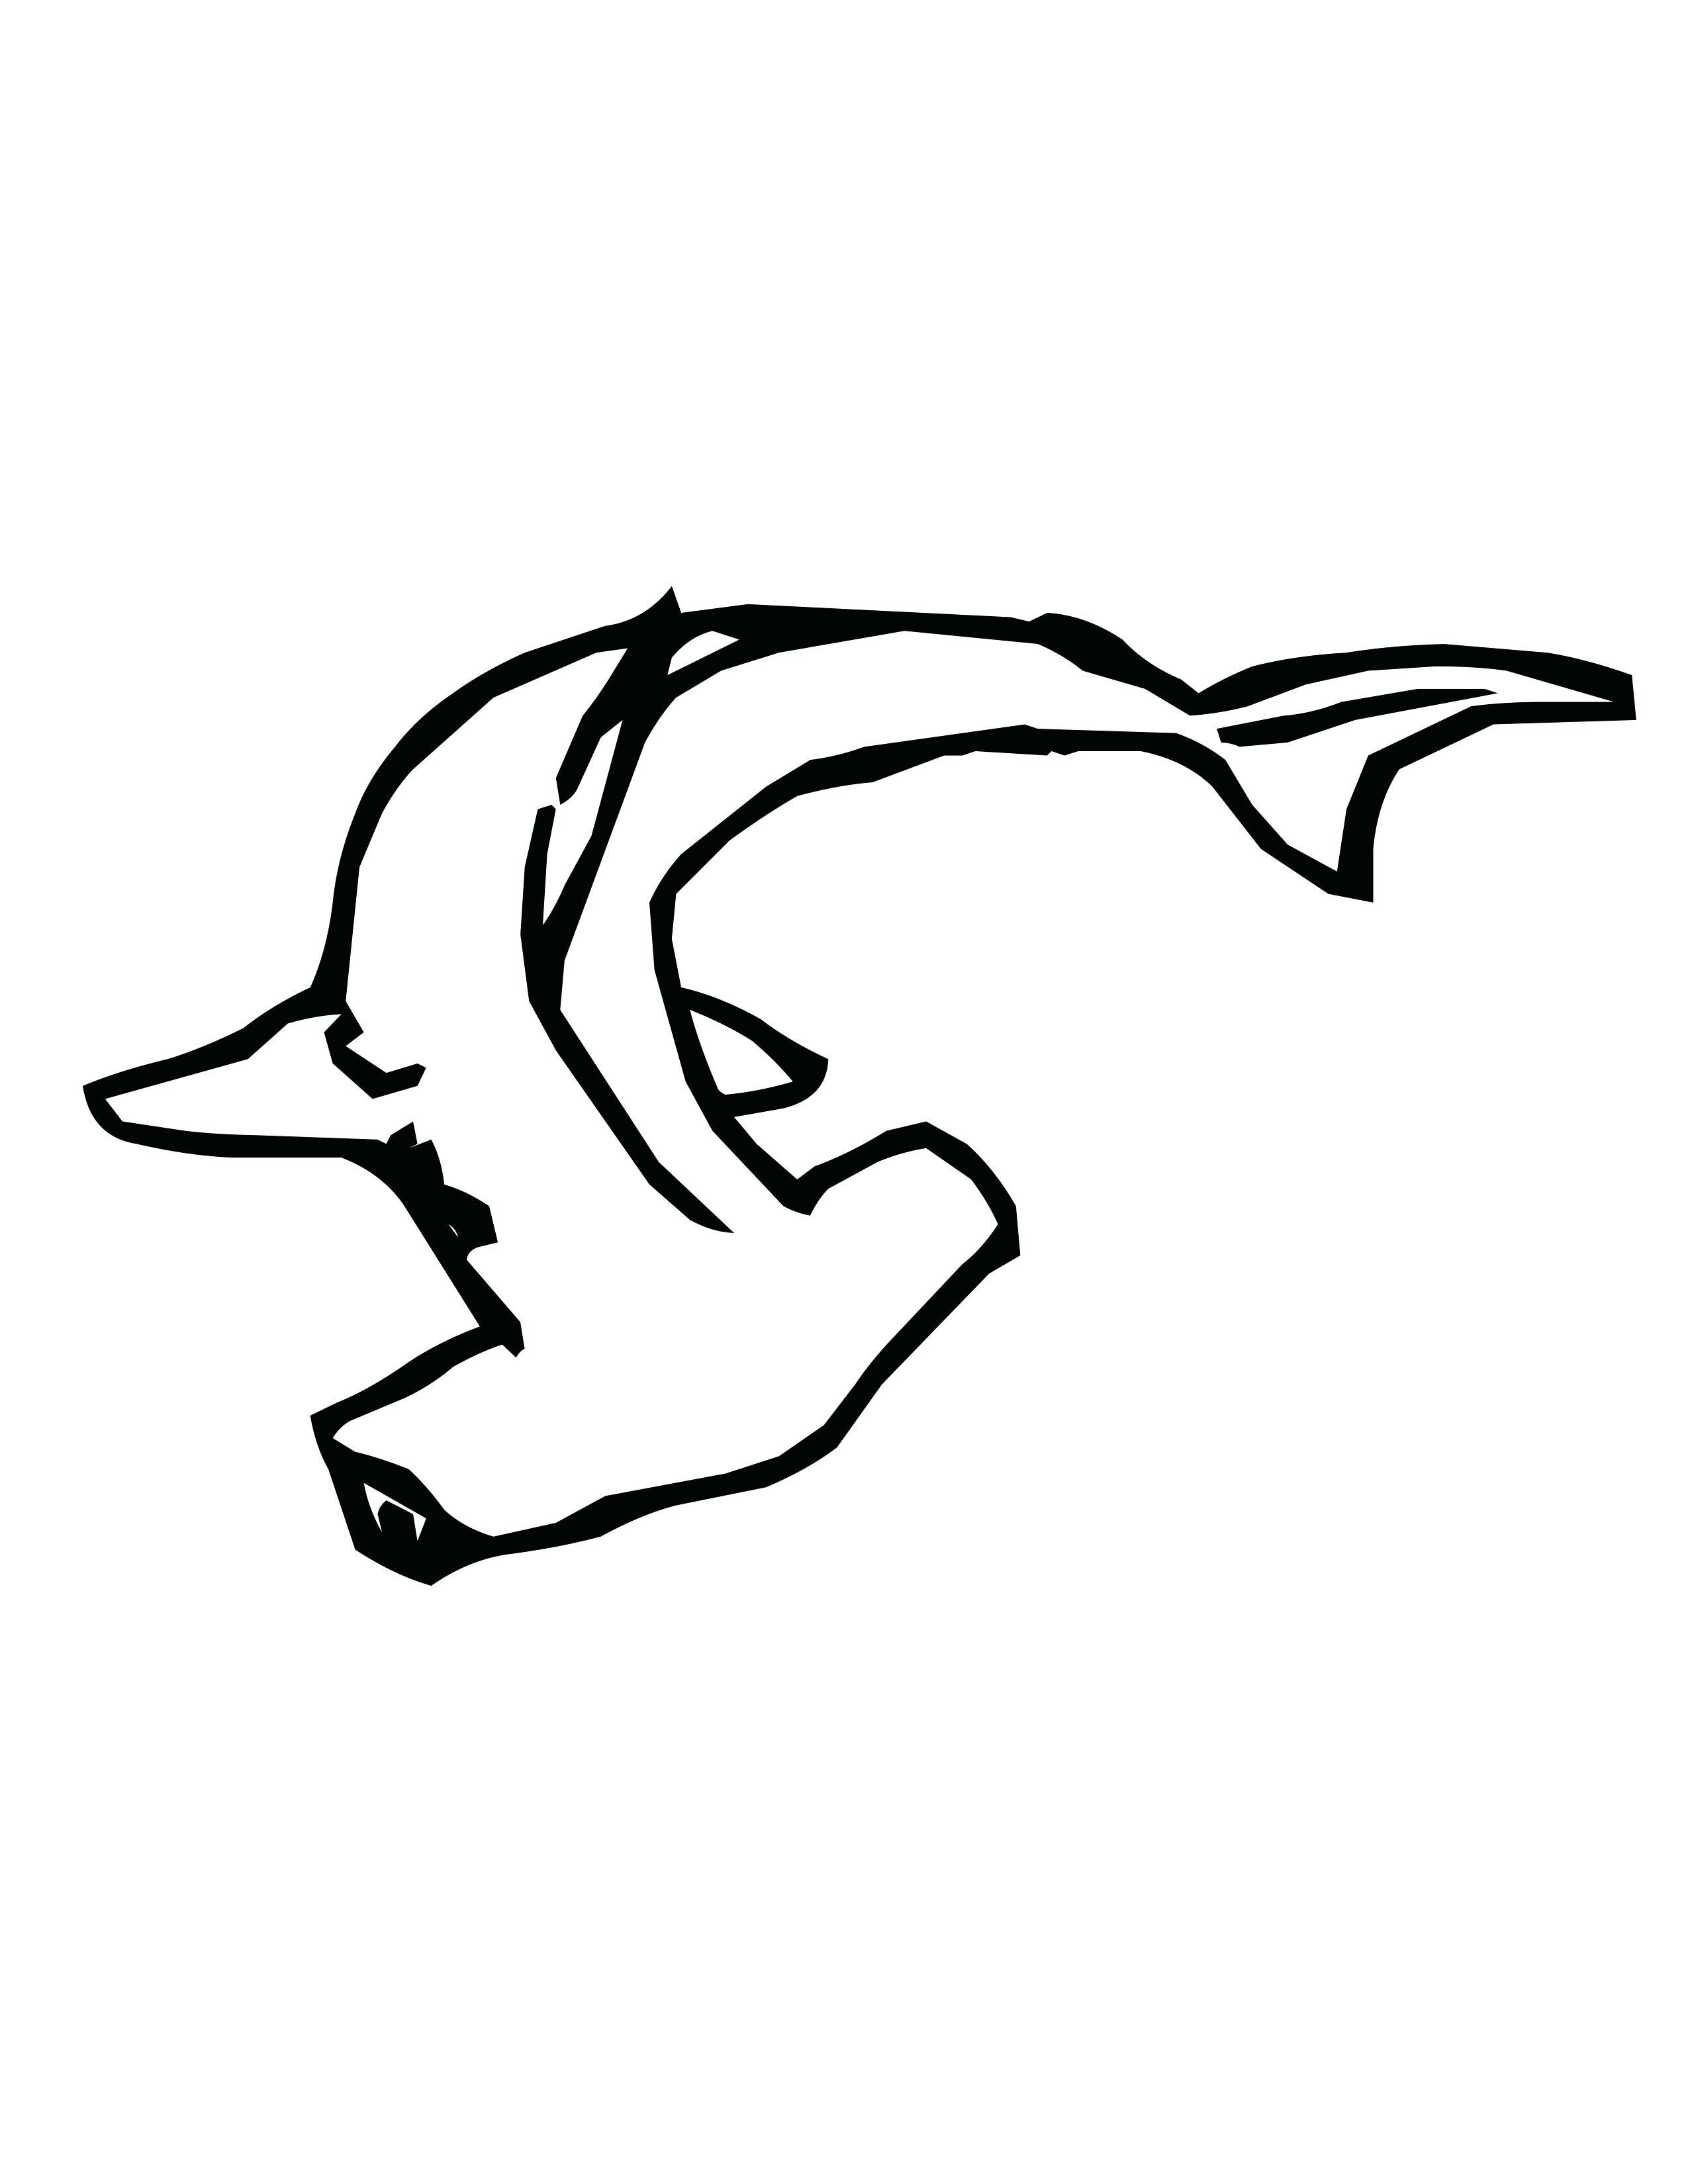 Shark Simple Drawing at GetDrawings.com   Free for personal use ...